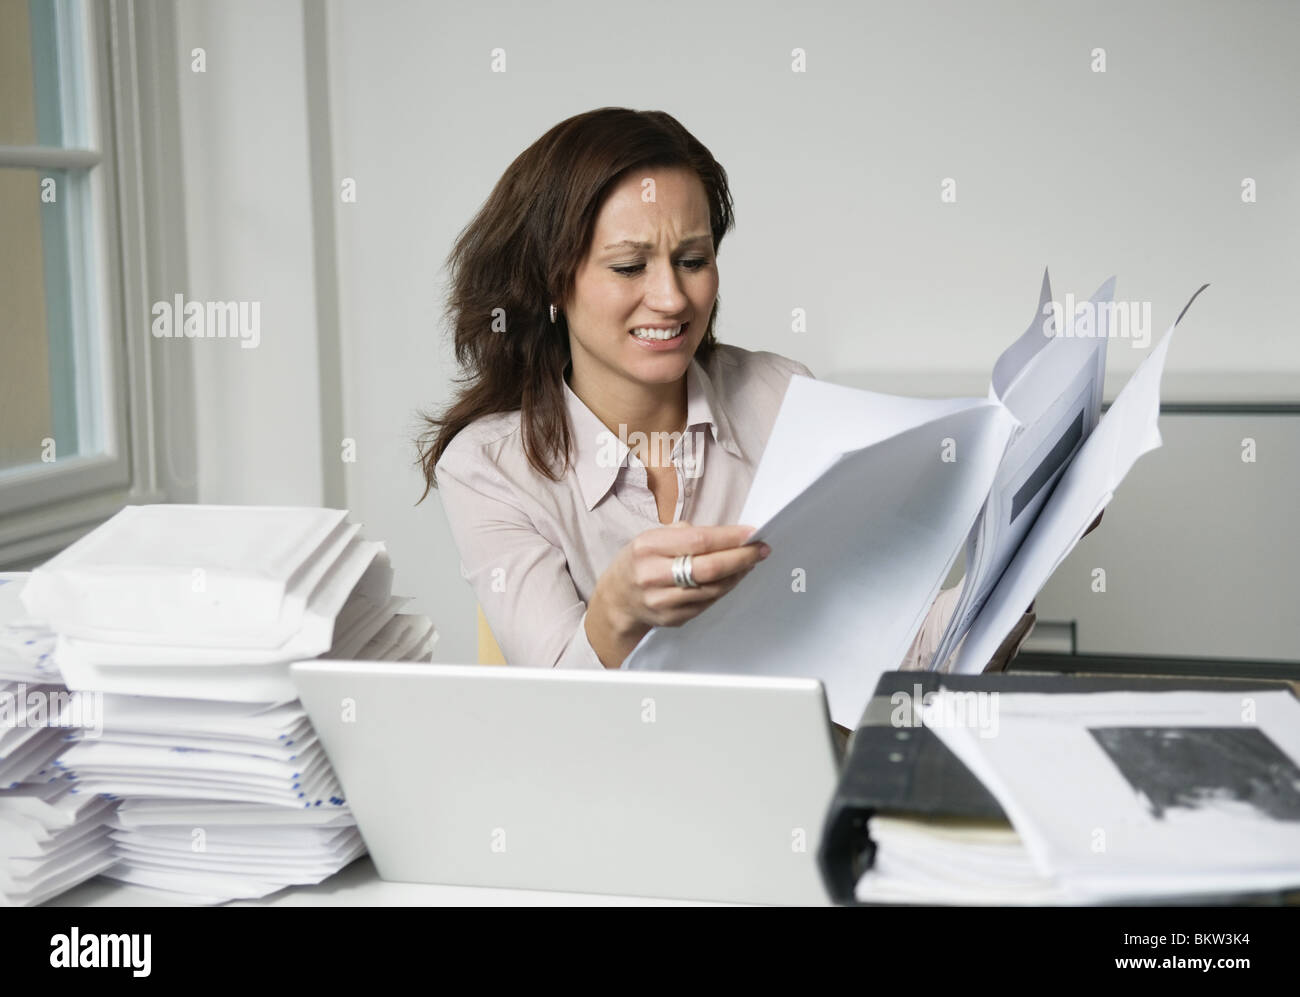 Woman behind piles of paper - Stock Image